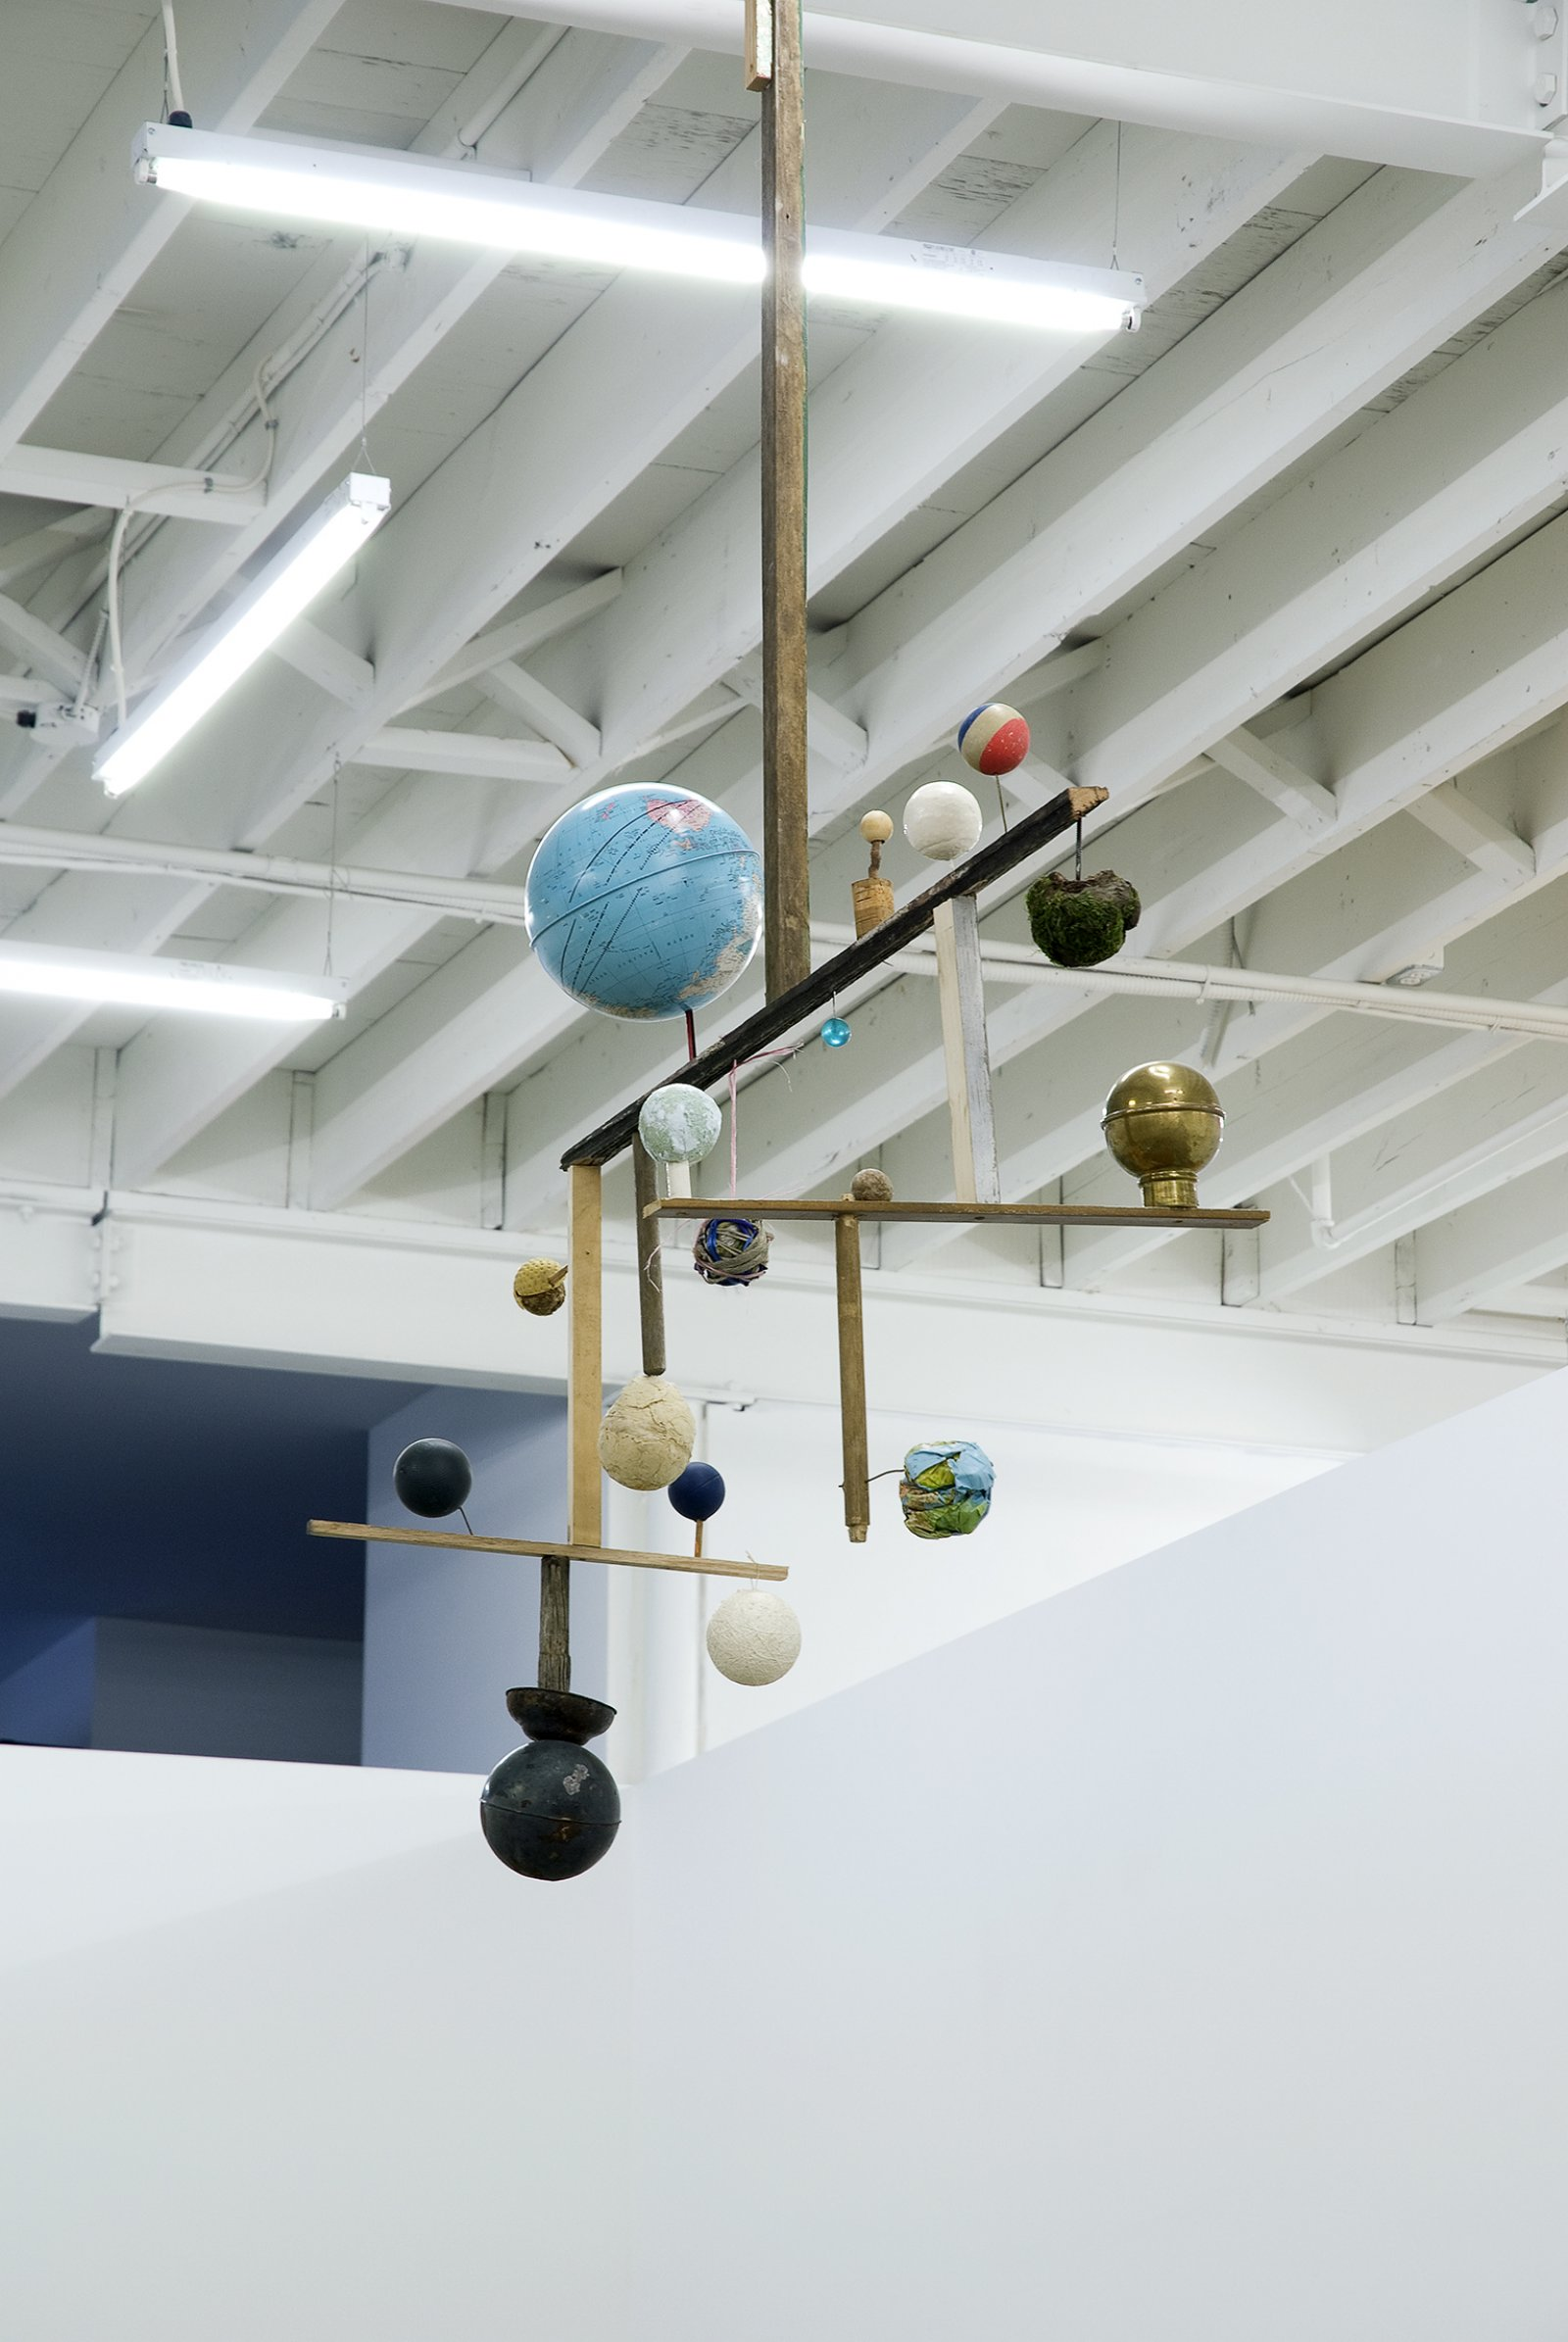 Gareth Moore, Crown Compass from Uncertain Pilgrimage, 2009, globes, balls, paint, scrap material, 103 x 22 x 54 in. (262 x 57 x 137 cm)   by Ashes Withyman